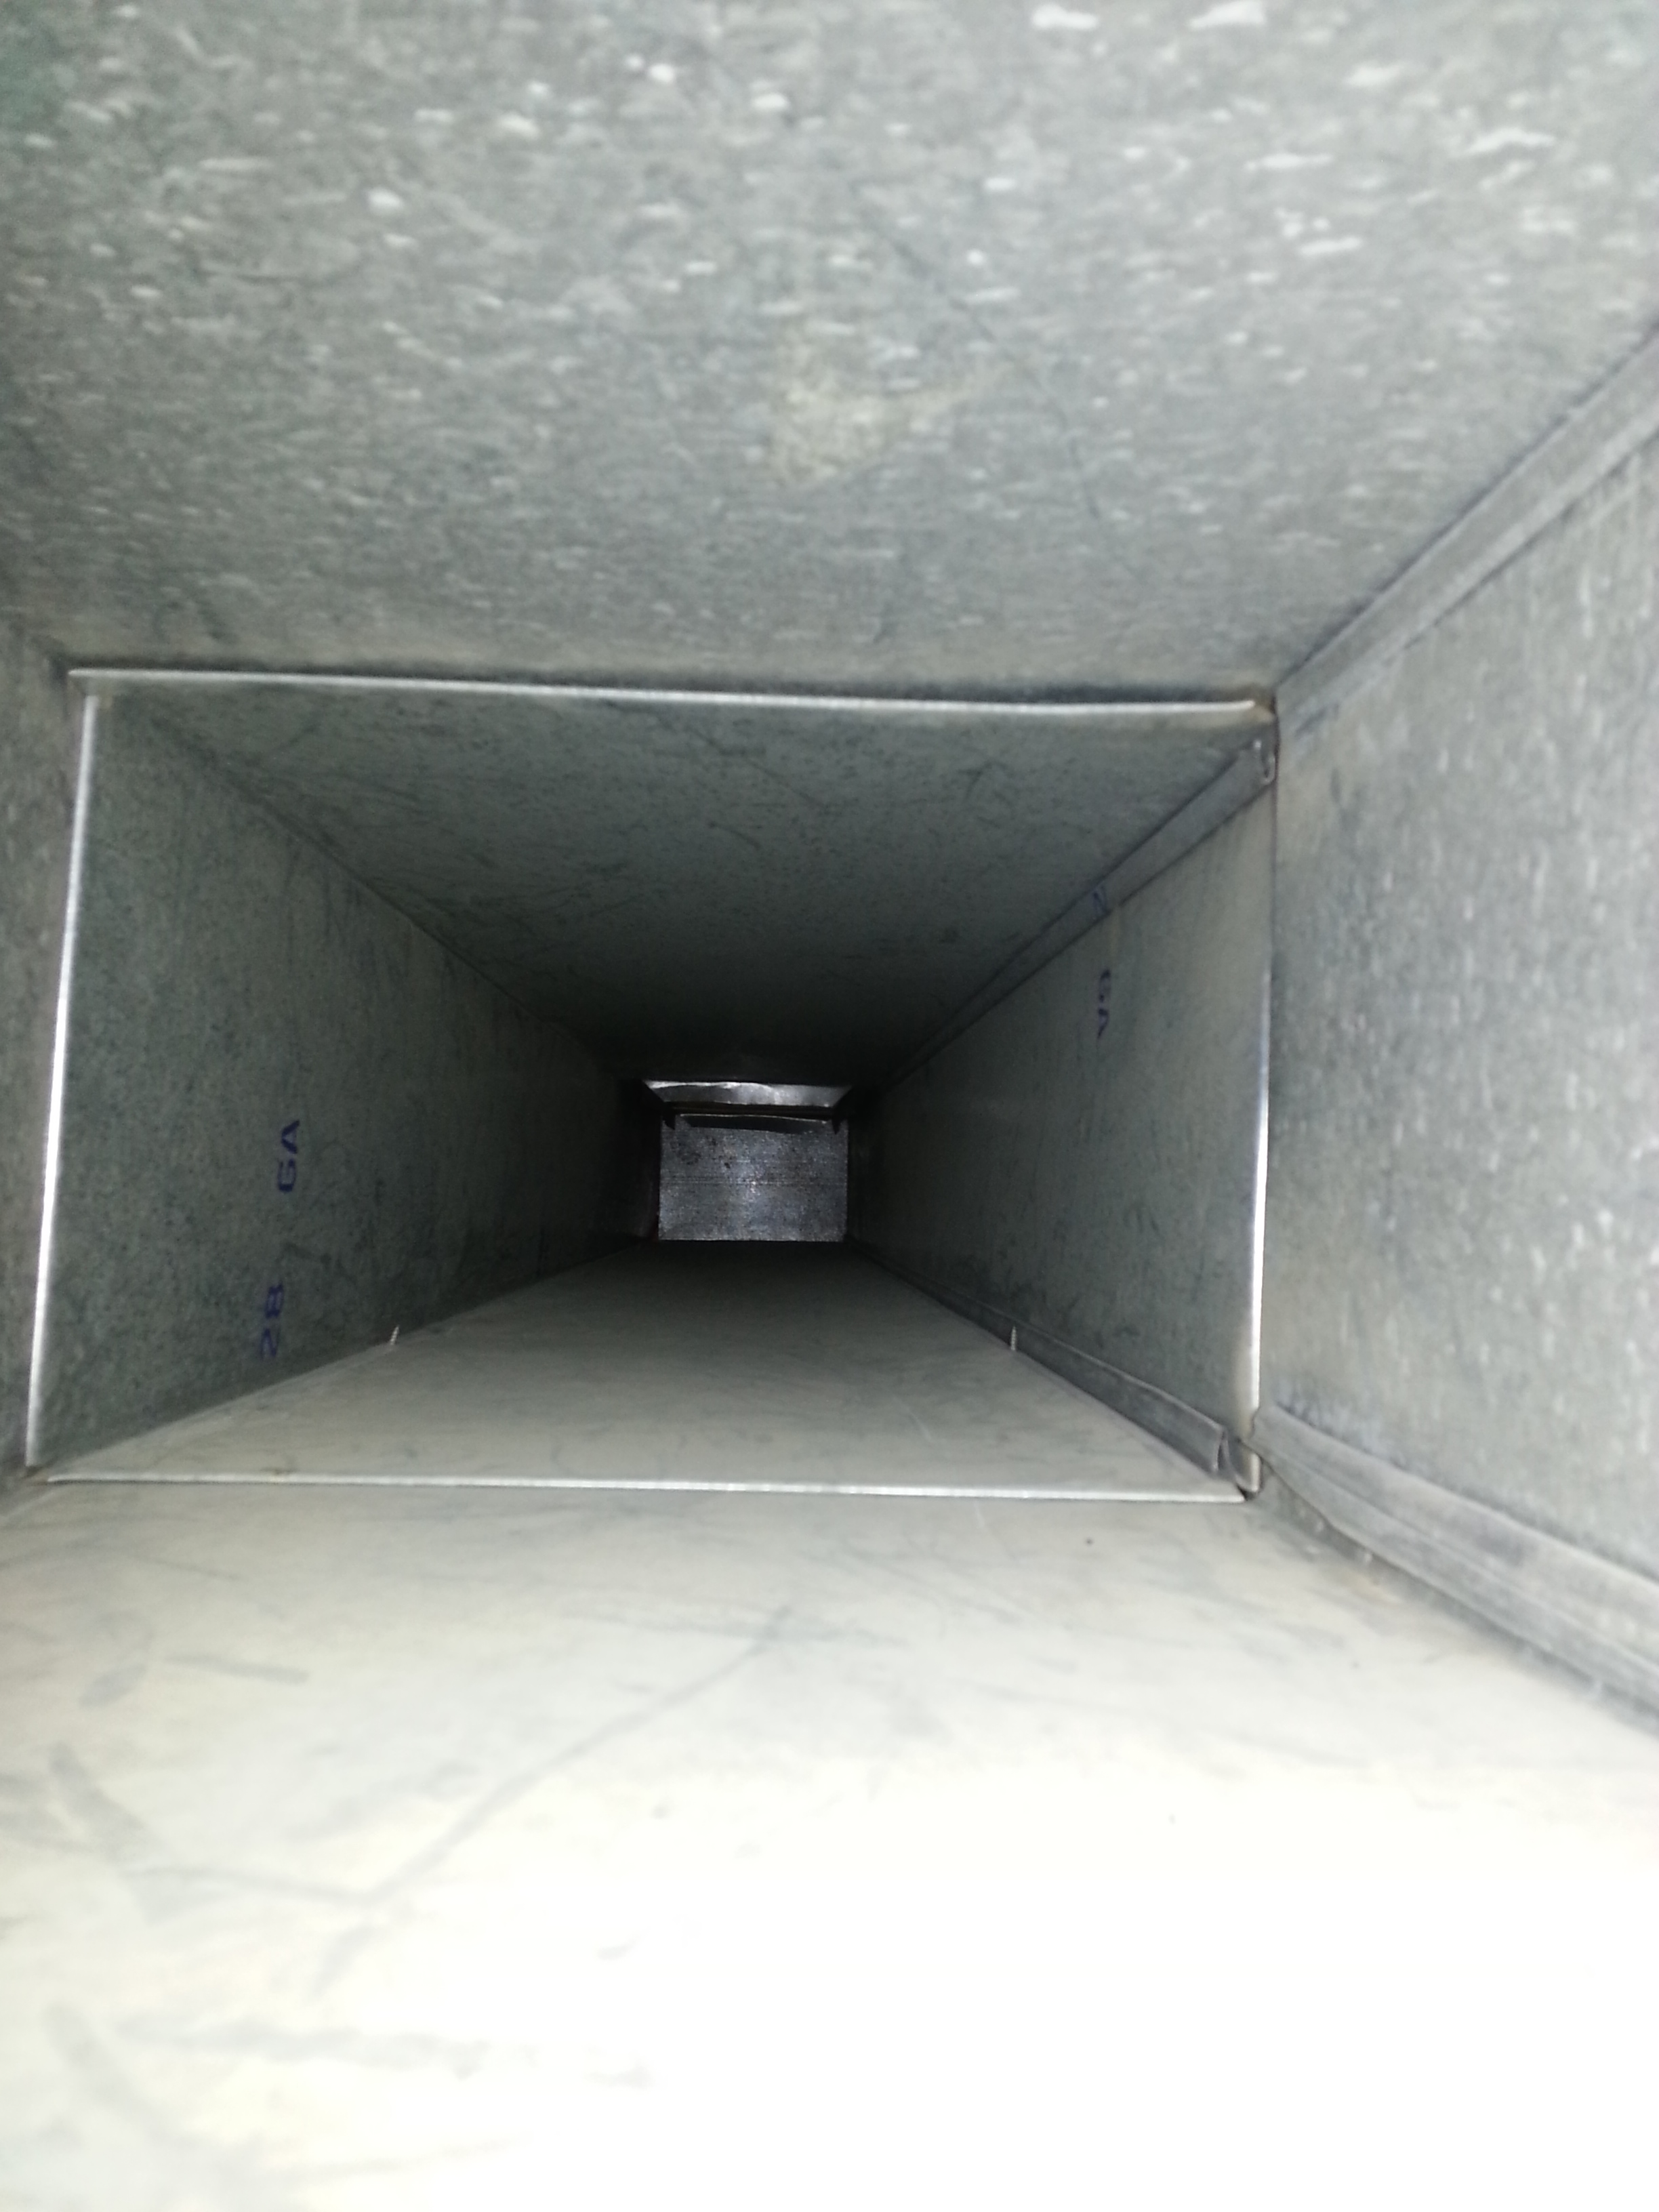 Cleaned Air Ducts By Real Clean Air Ducts In Montgomery, MD